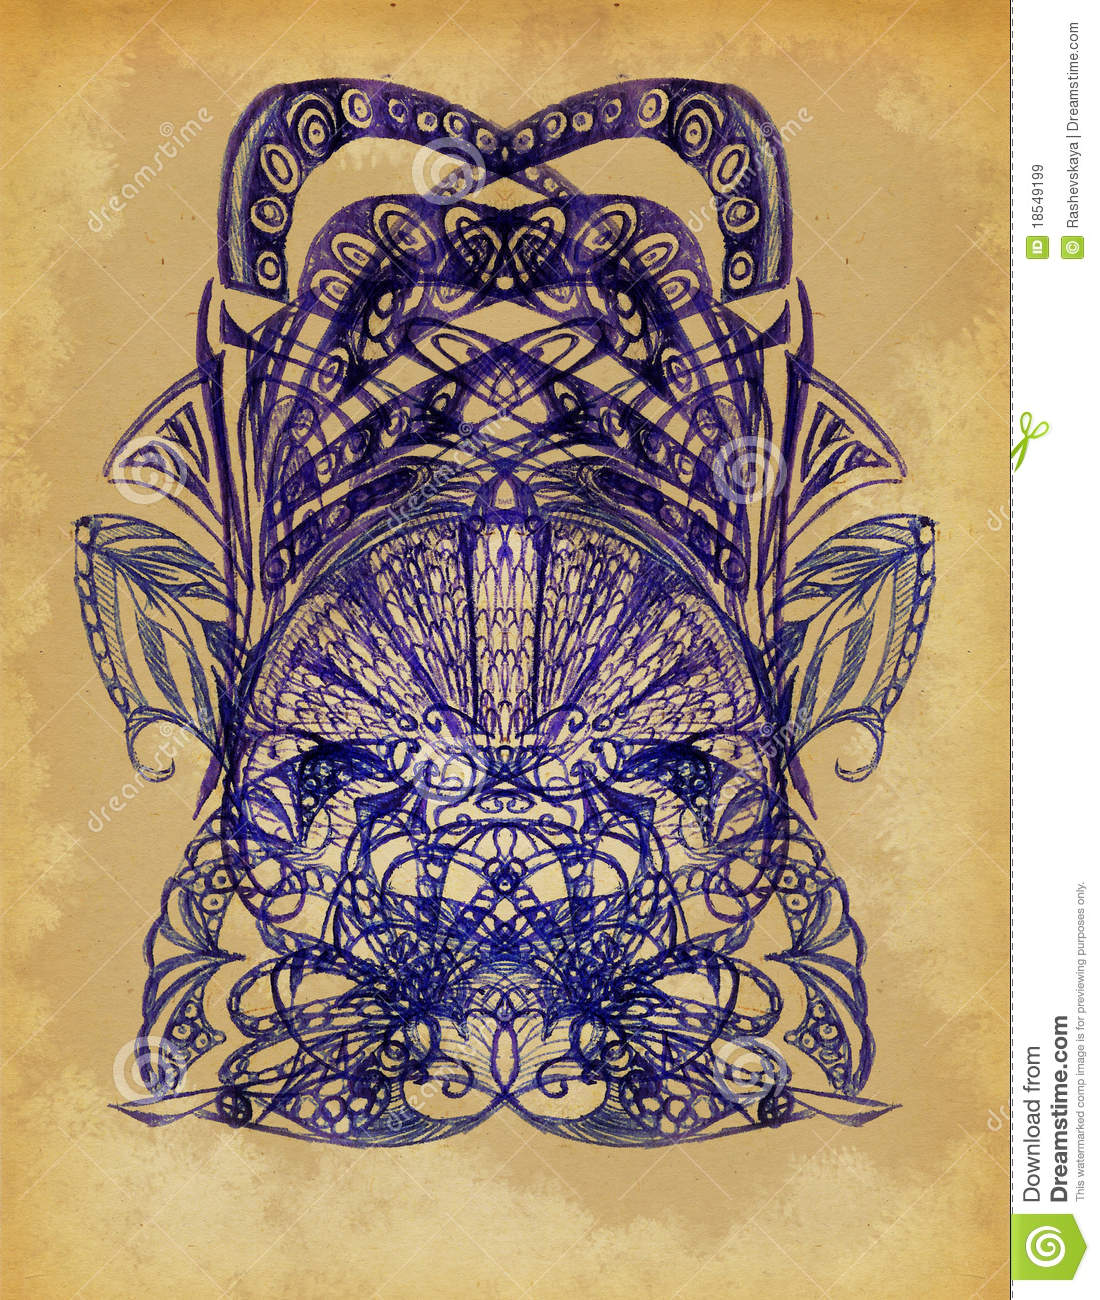 The drawn elements of decorative pattern